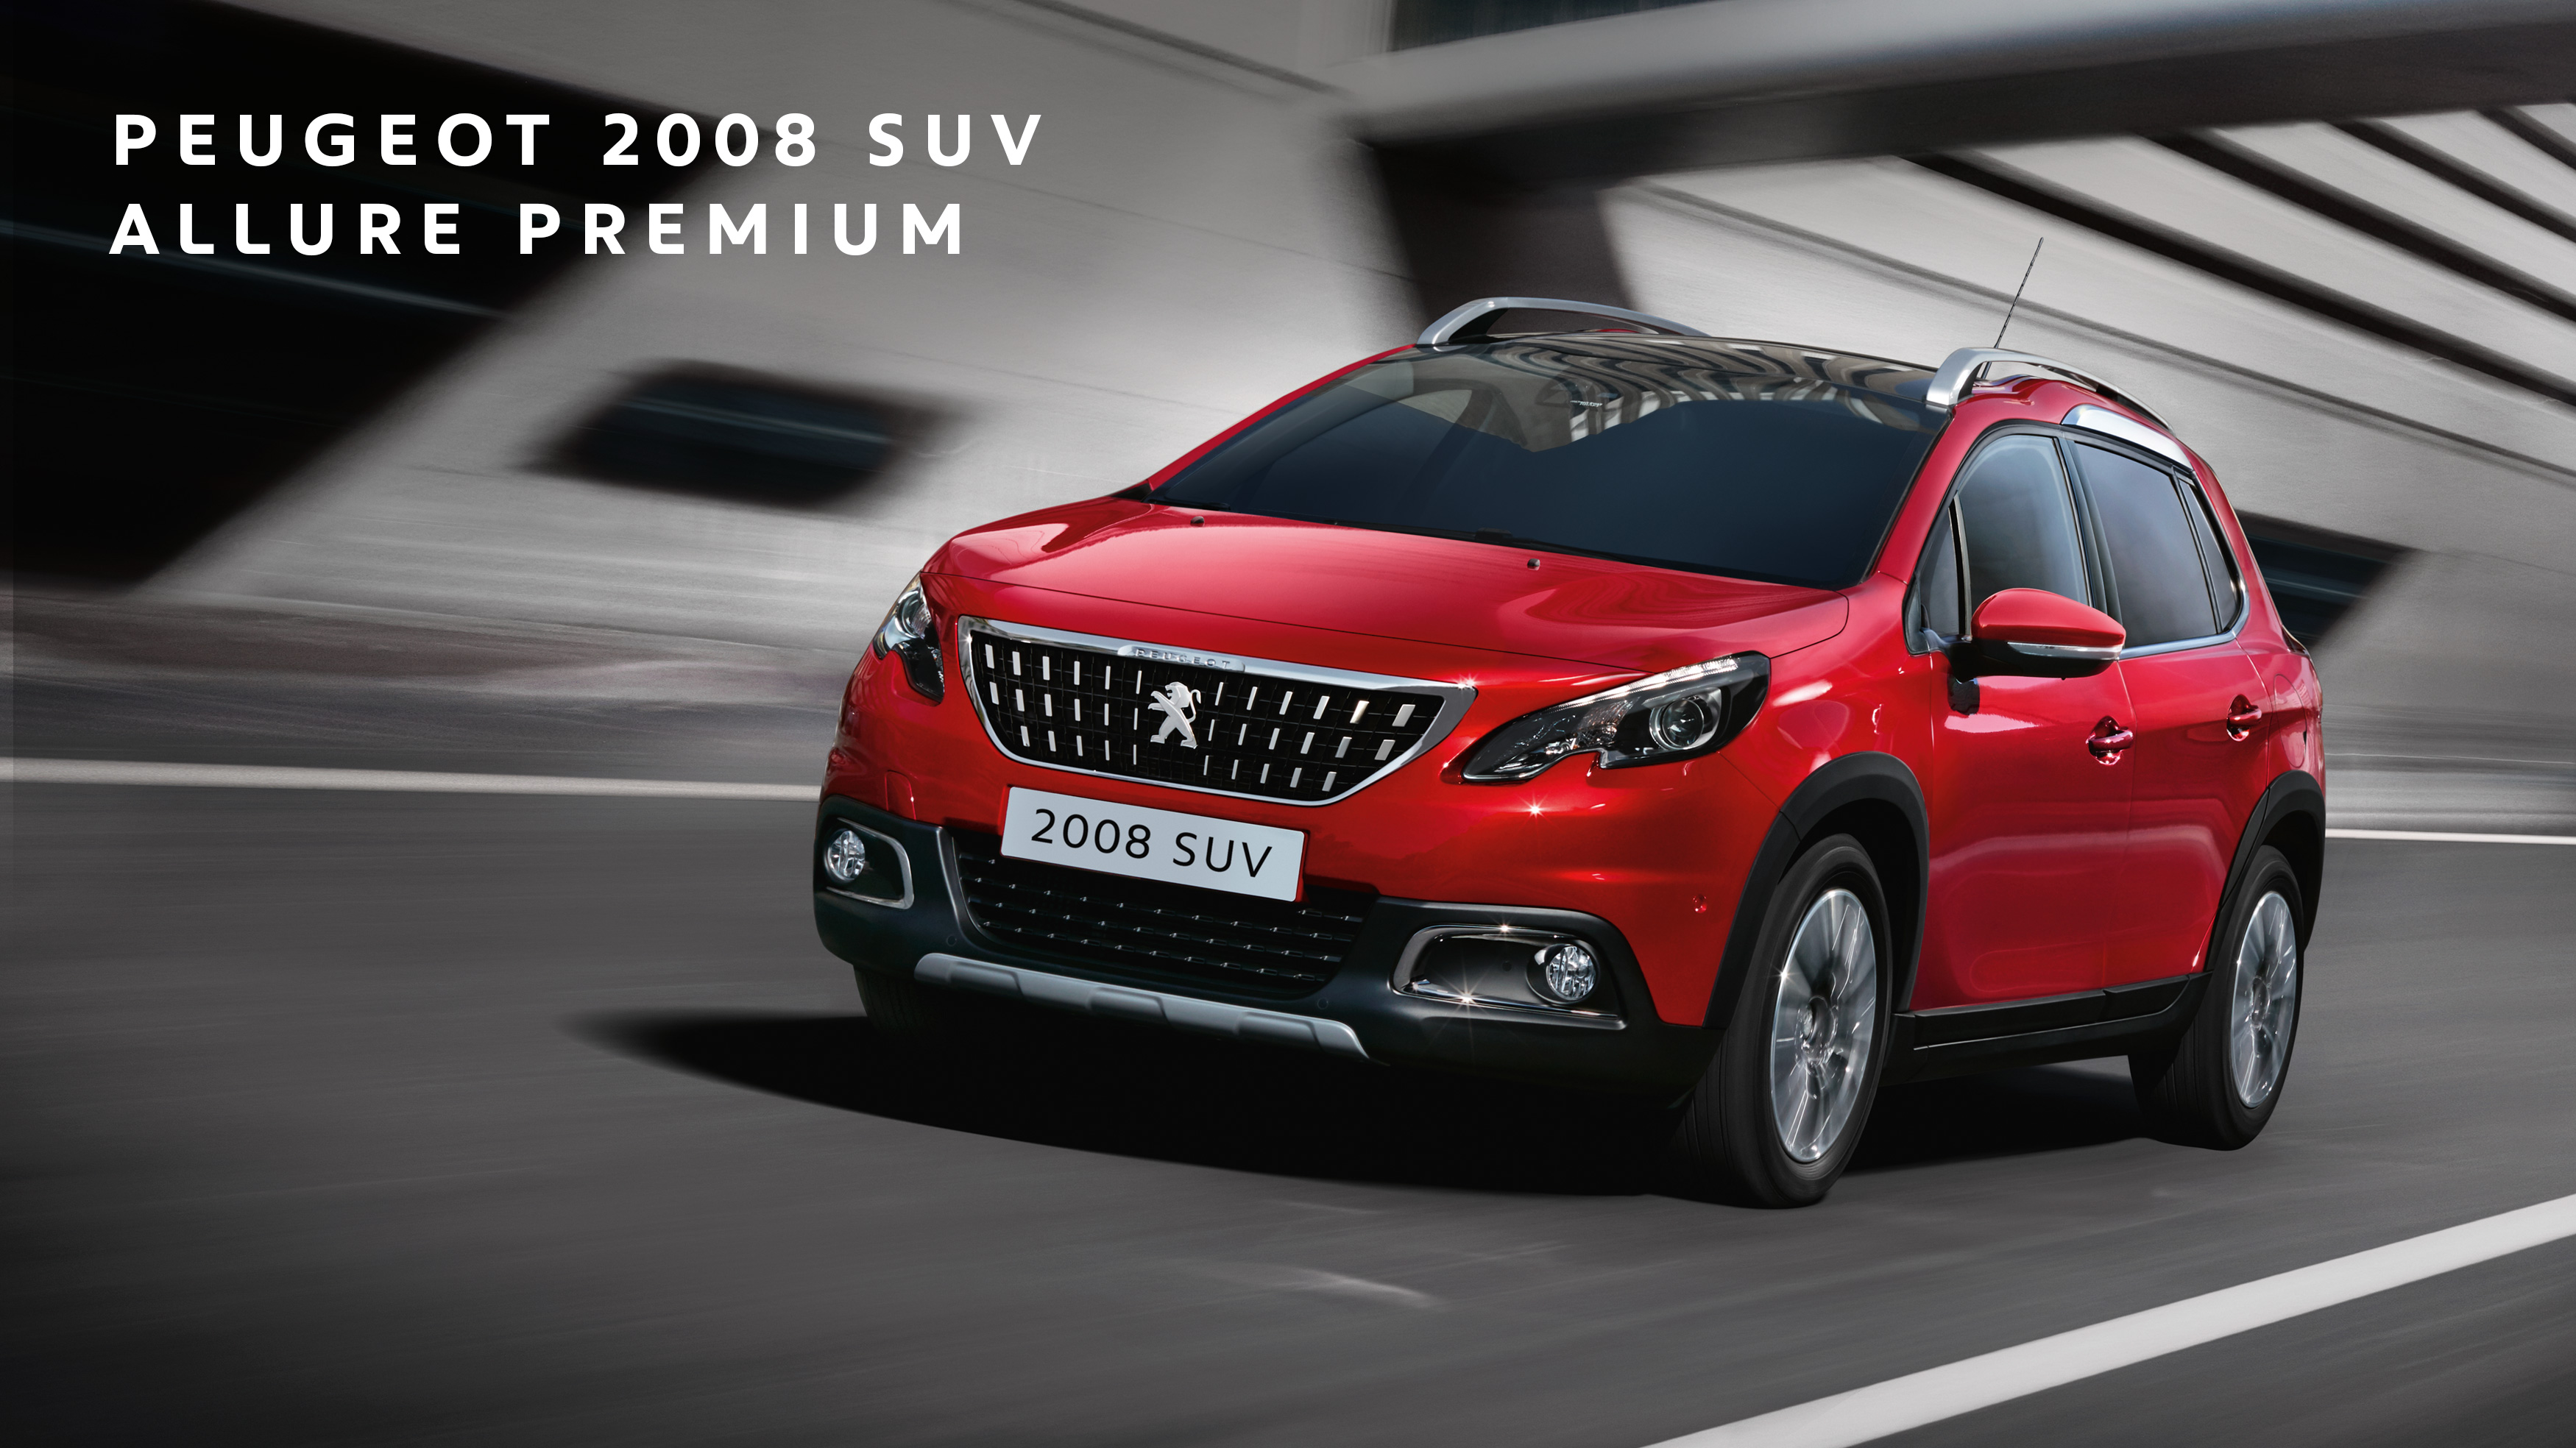 Peugeot 2008 SUV for £229 per Month